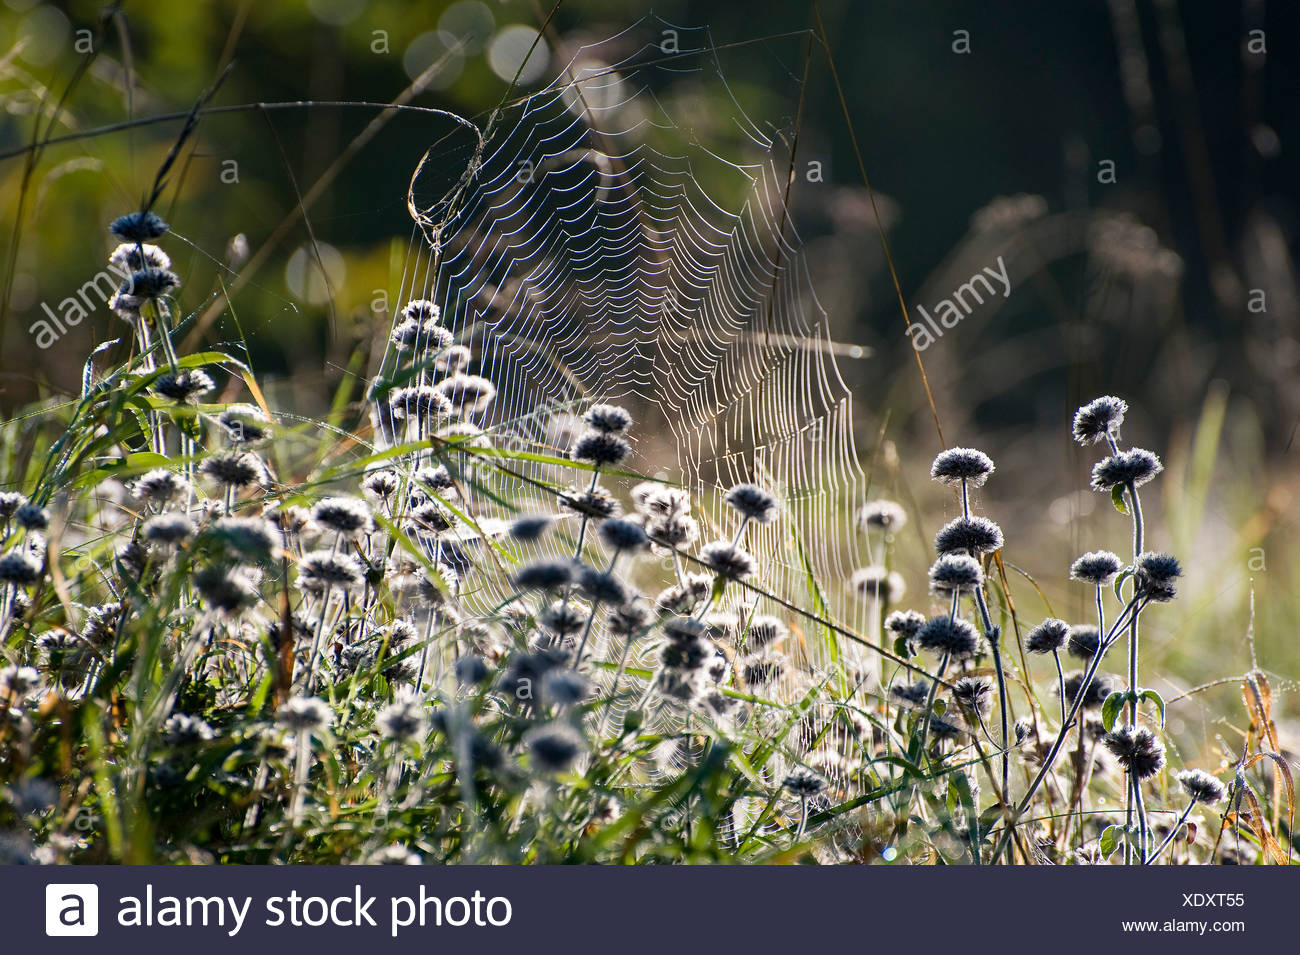 Spider web on an autumn morning - Stock Image